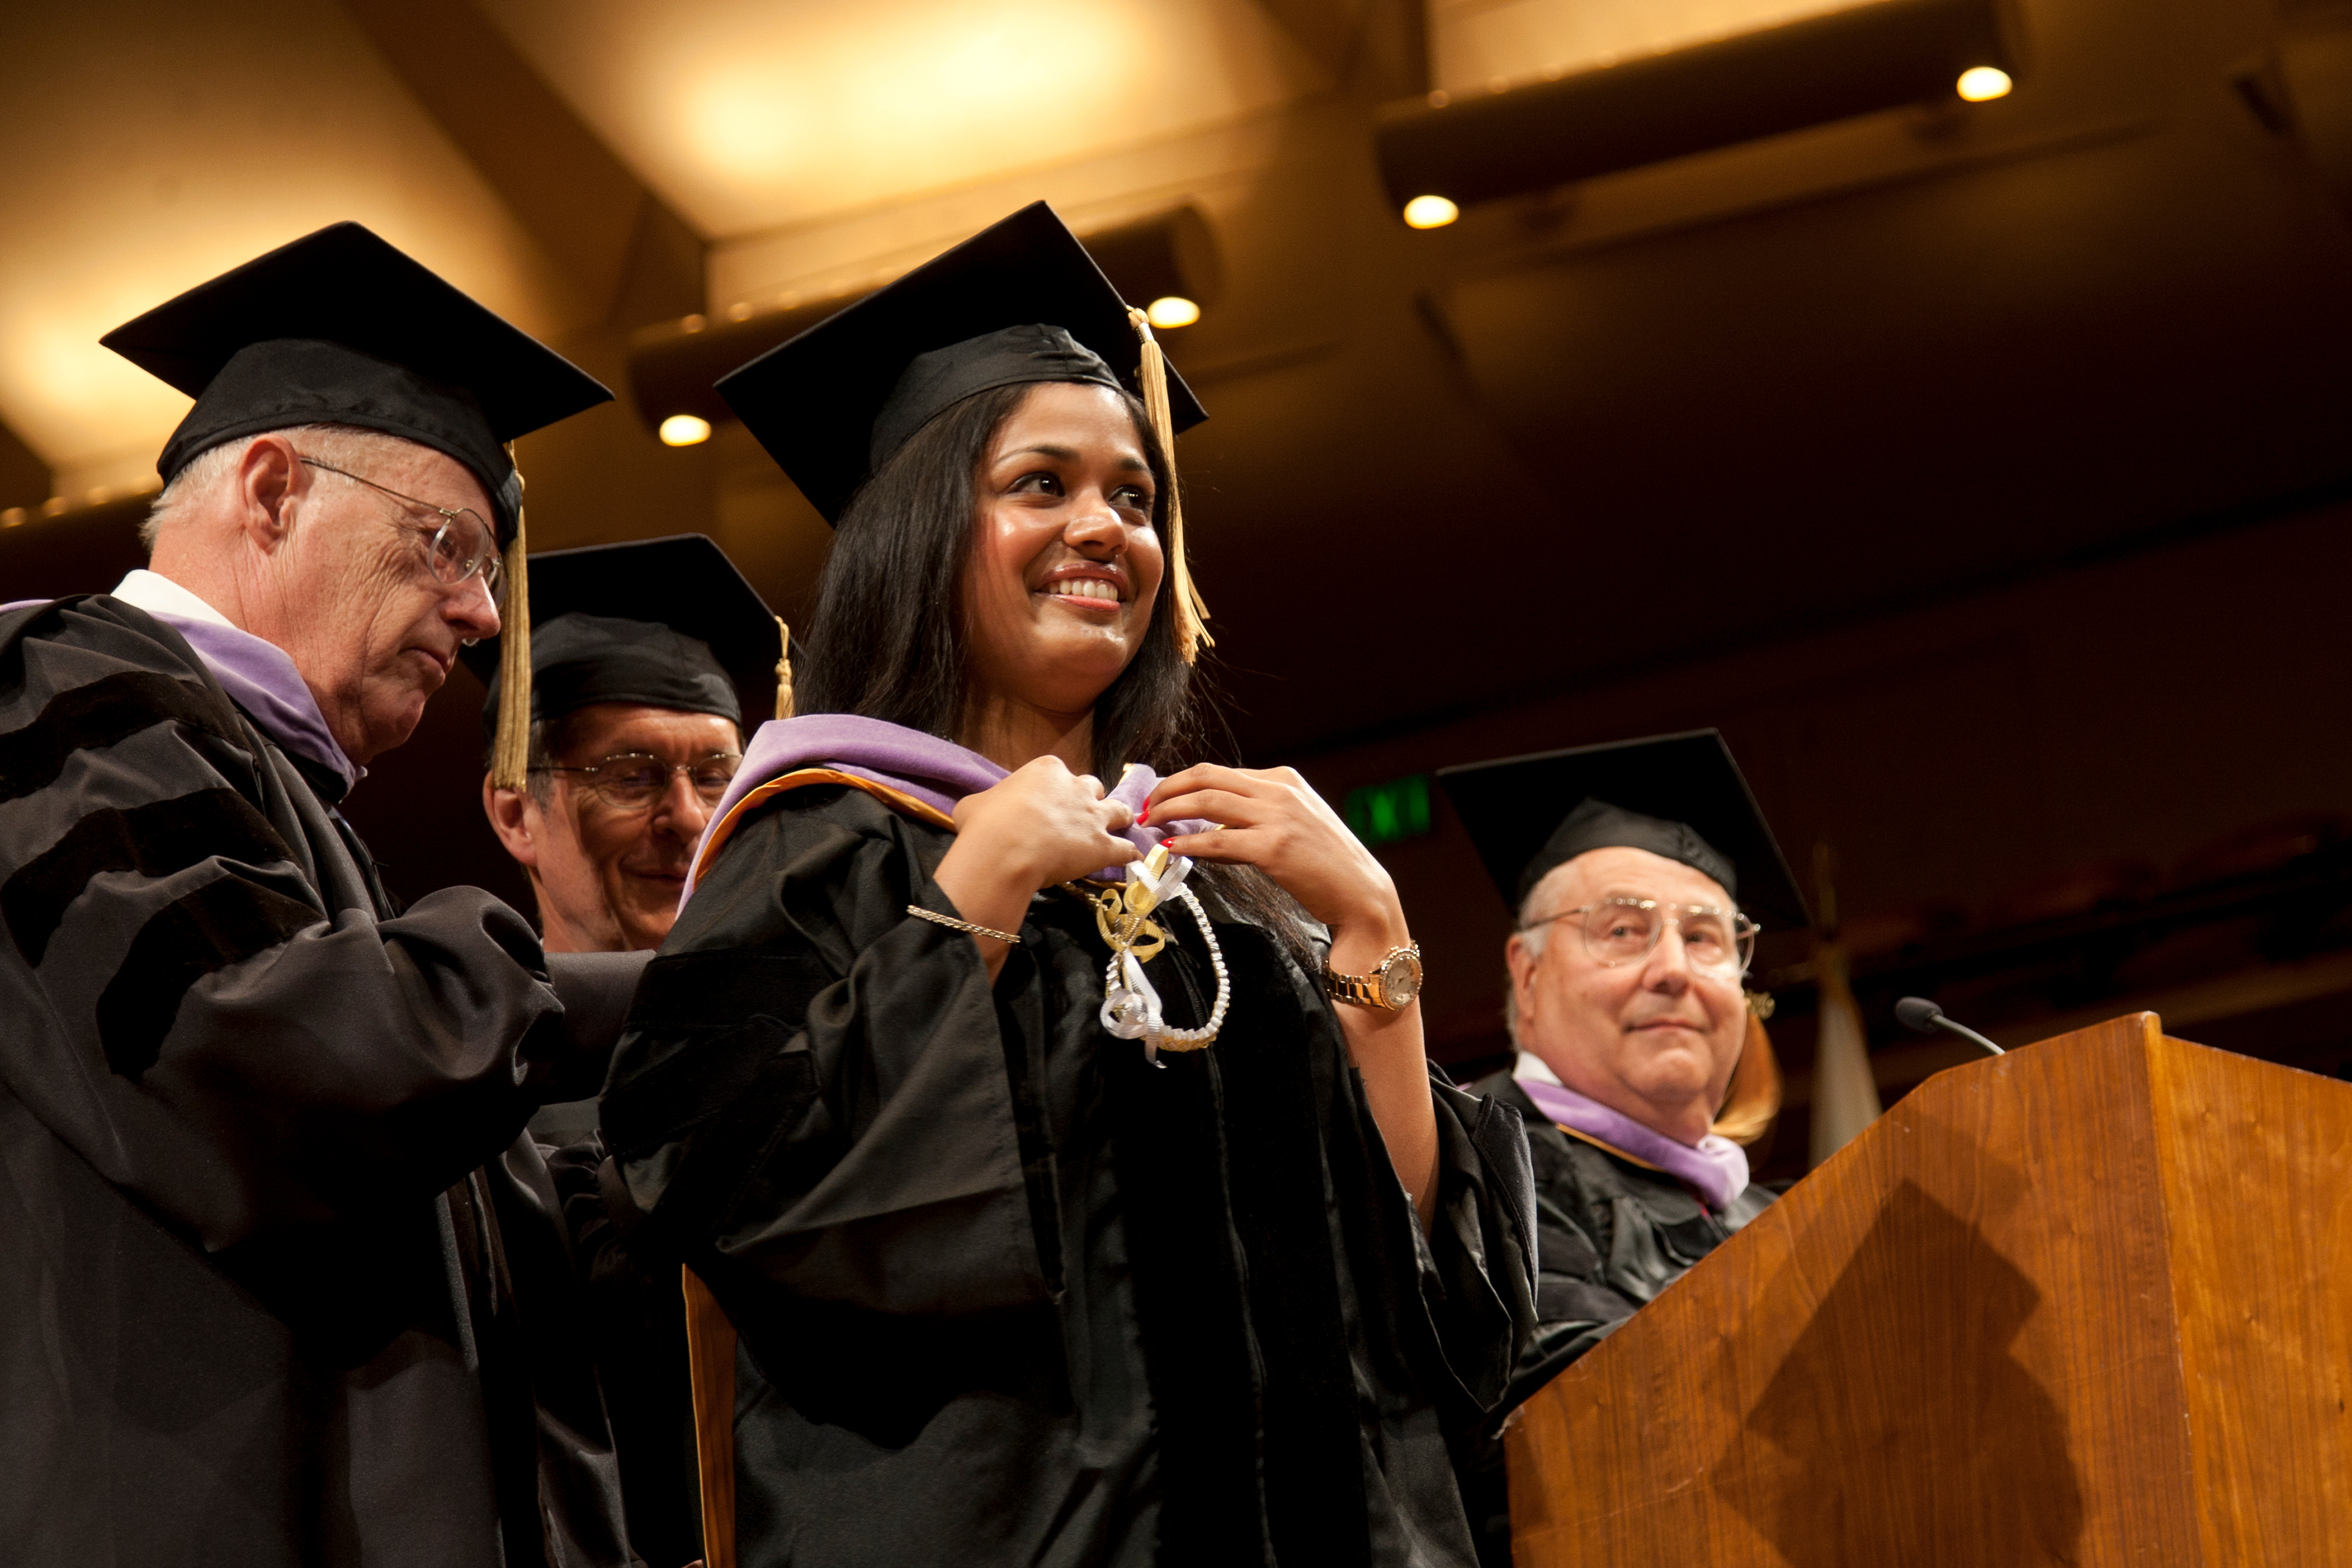 Graduate Prema Aggarwal is hooded during the commencement ceremony. The most important element of academic regalia is the hood, which is lilac, the color that denotes a doctor of dentristry.